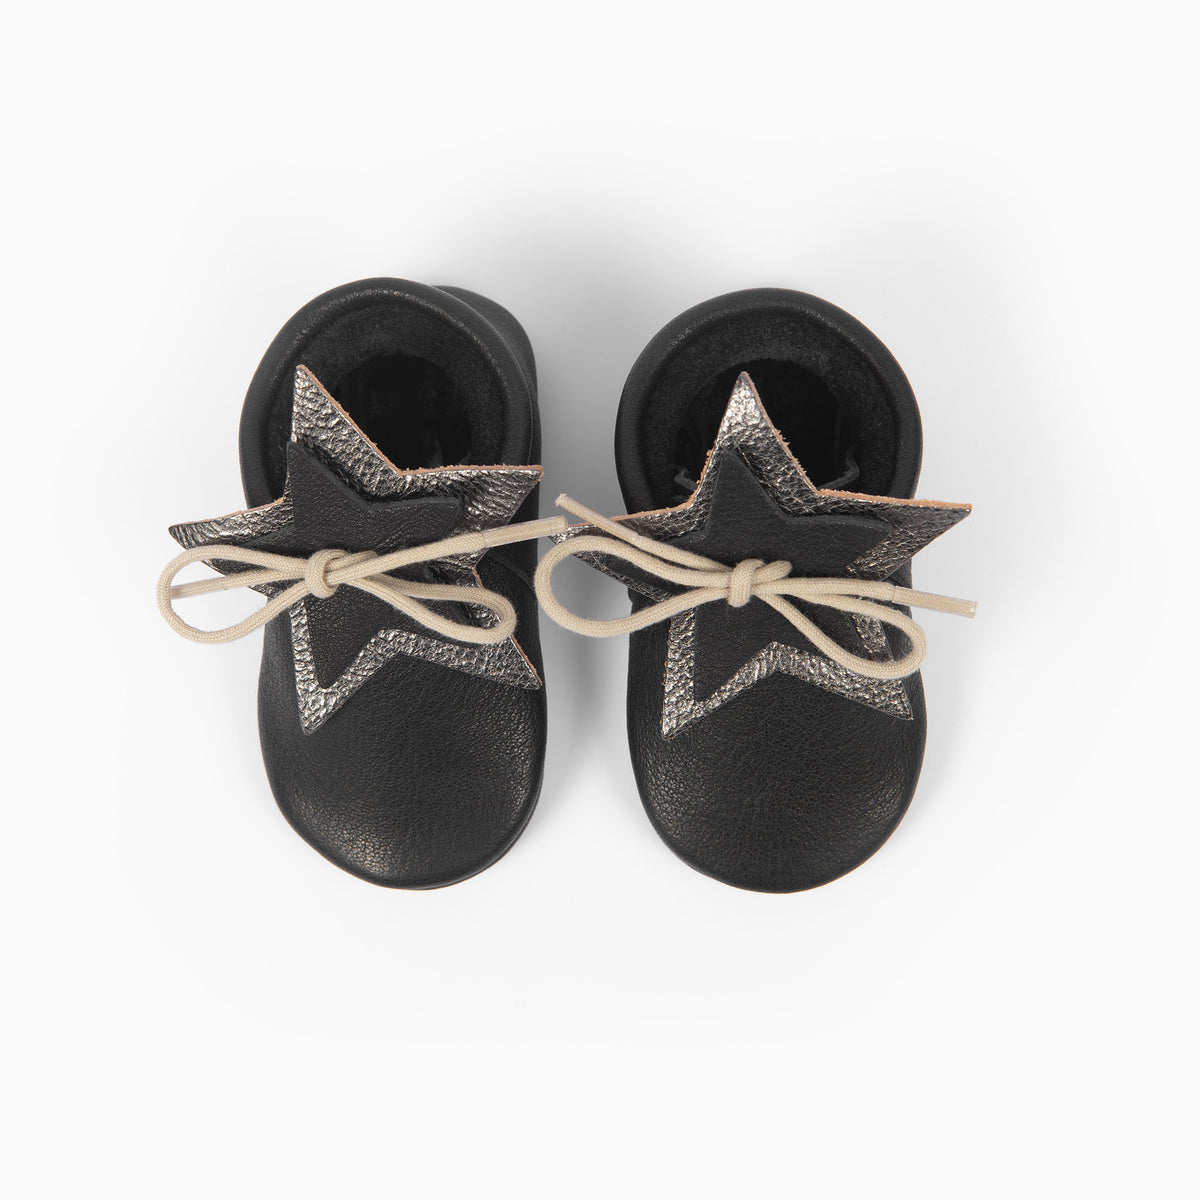 BLACK STAR SHAPE MOCCASINS